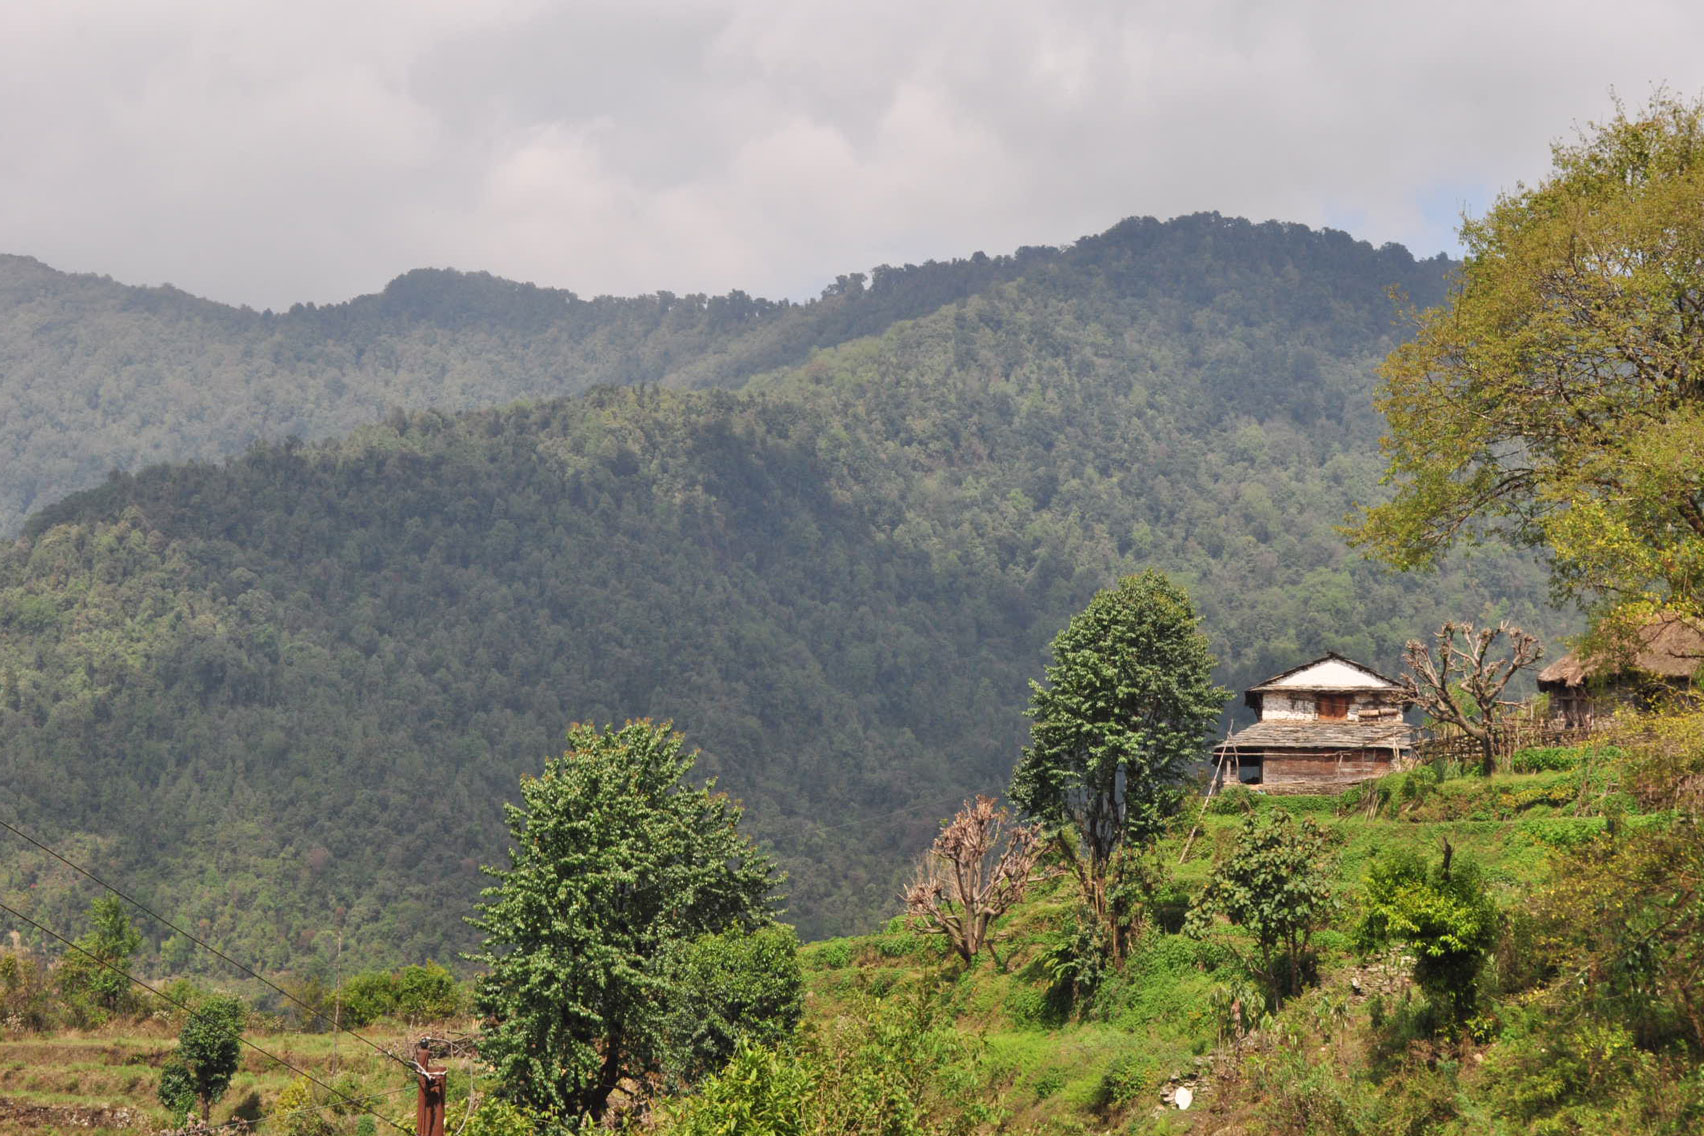 Day 12: Trek from Jhinu (2505m) to Syauli (6hrs, 1100m) and drive to Pokhara (4 hrs)